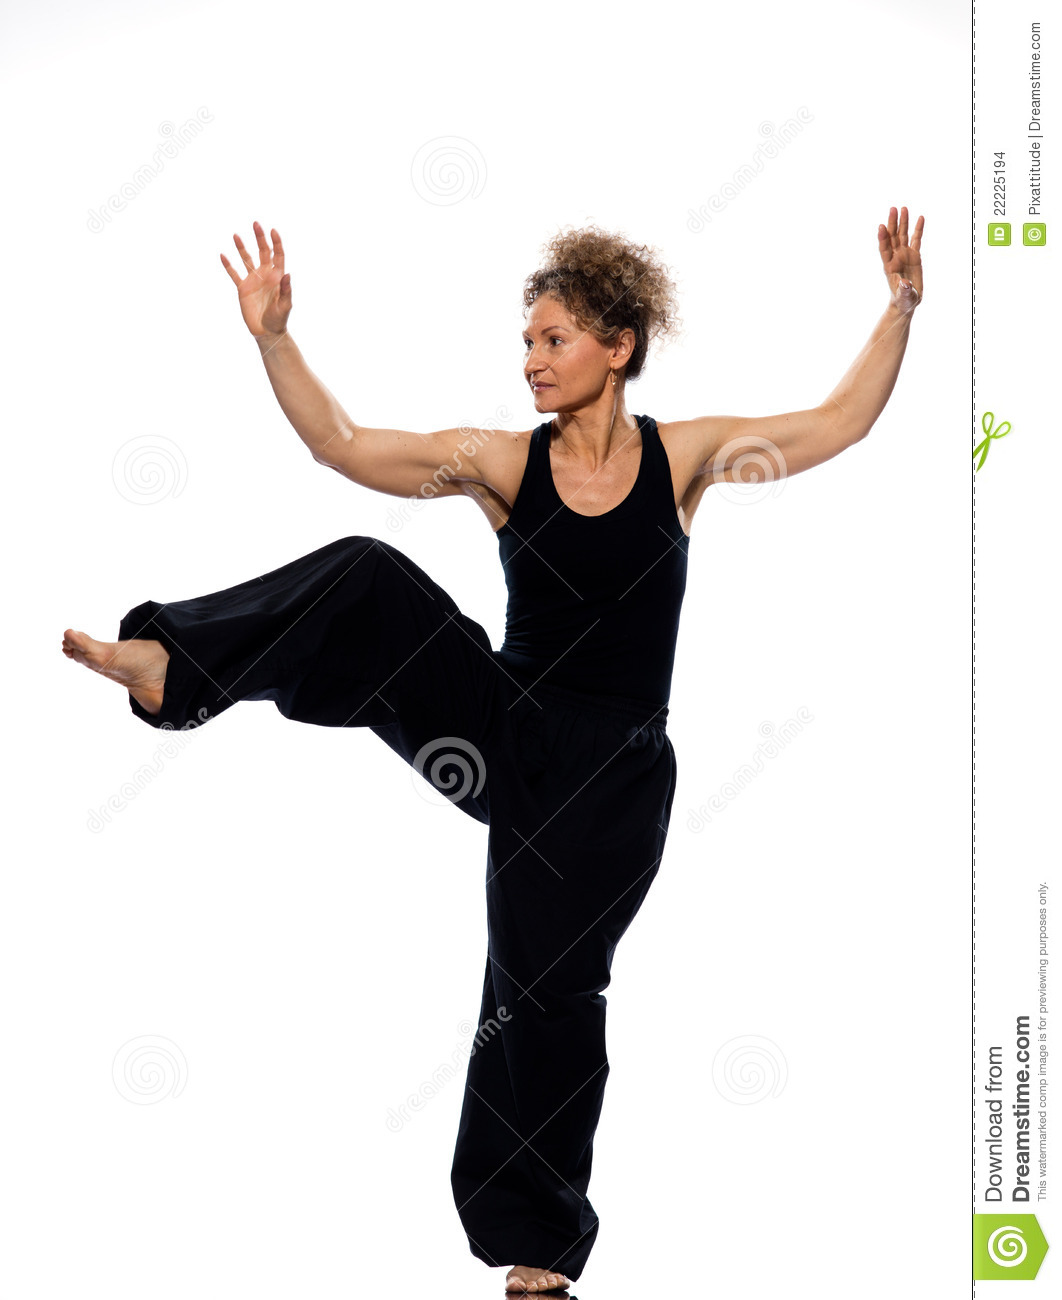 Woman Tai Chi Stock Images - Image 22225194-4419